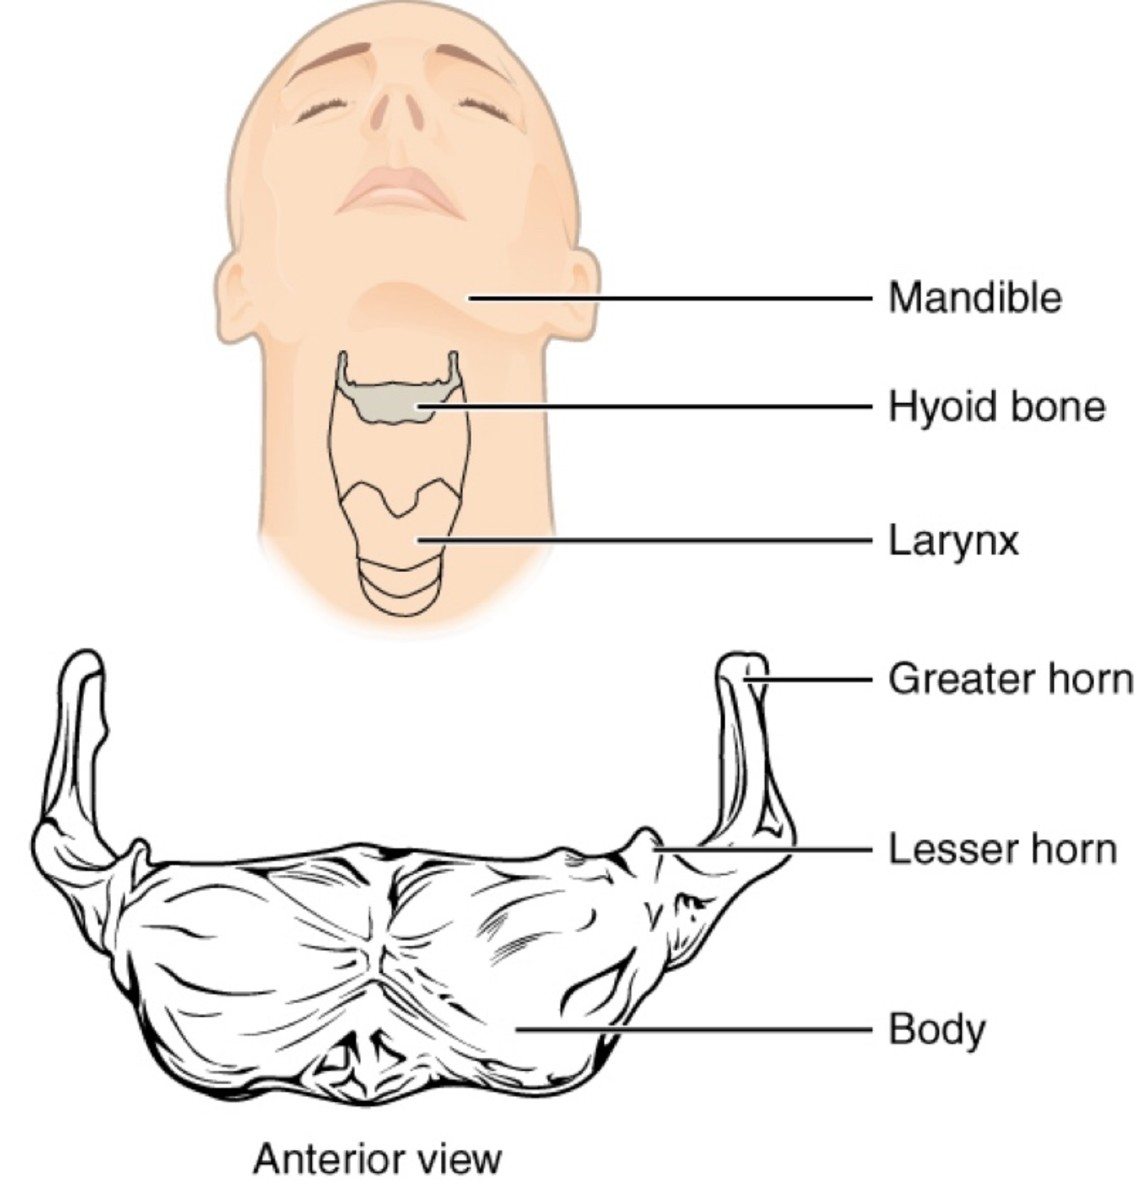 Location and shape of the hyoid bone